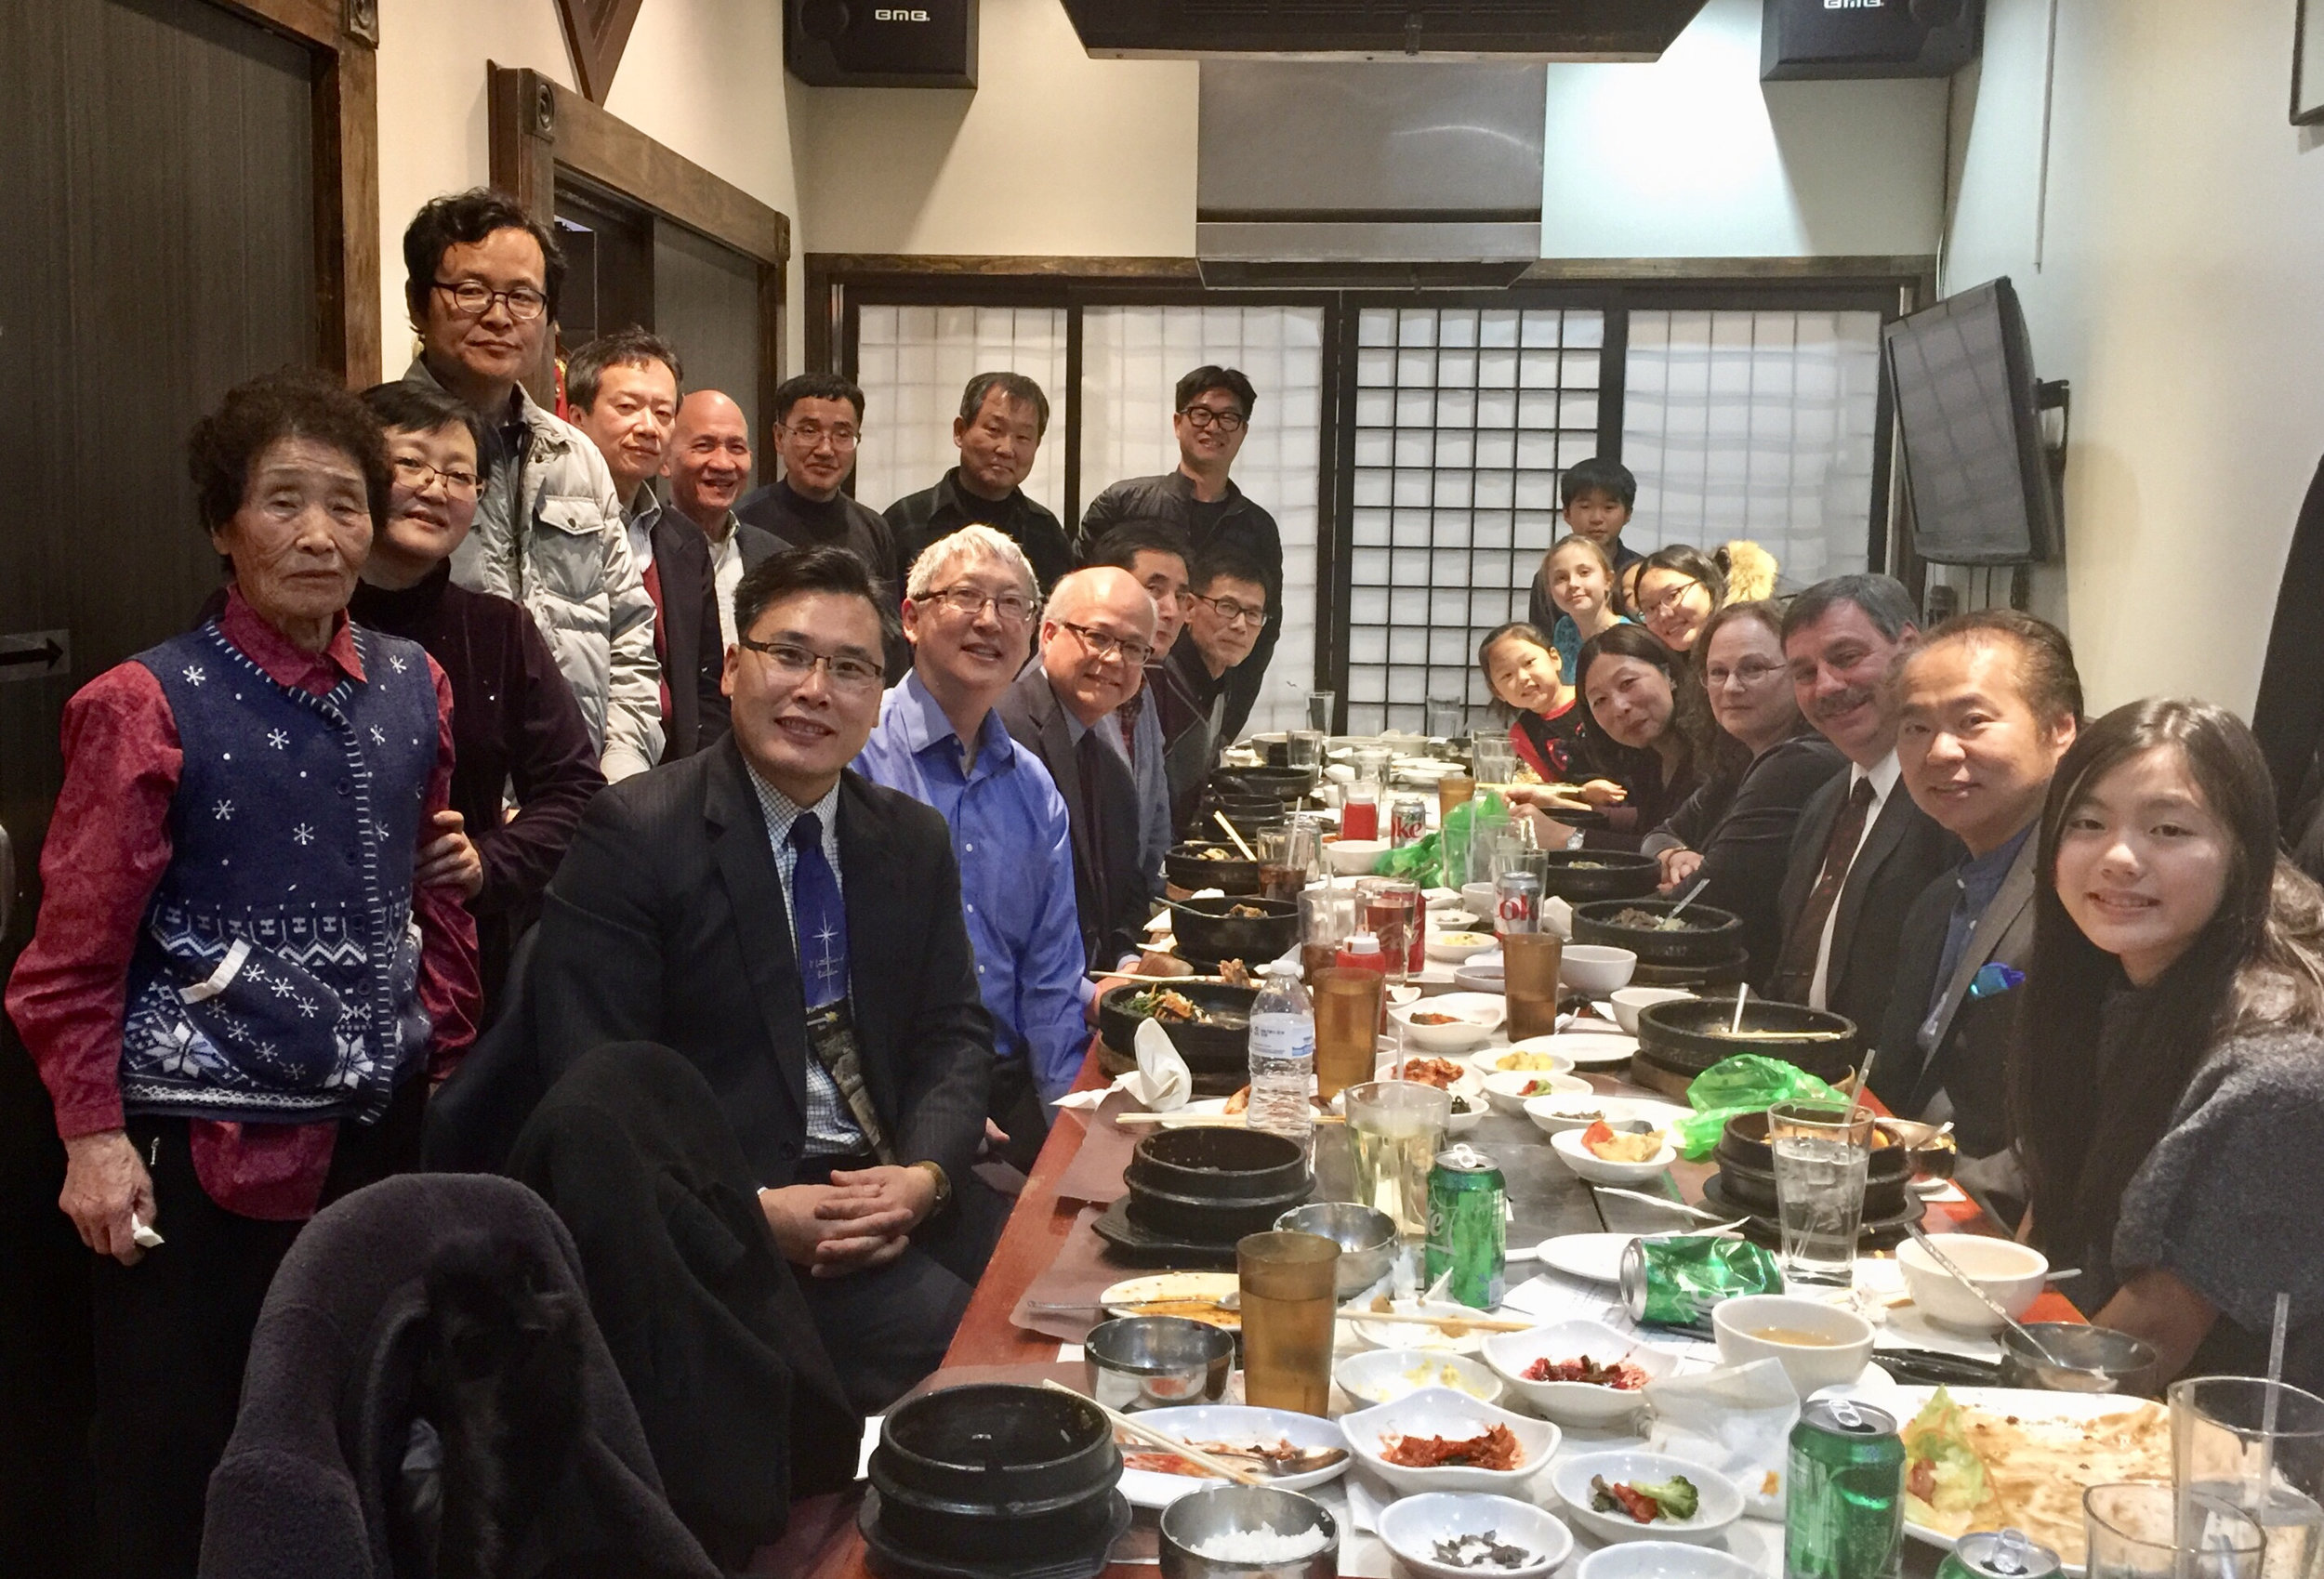 Twenty-Four Korean Pastors, as well as their families, gathered for a time of celebration and encouragement.